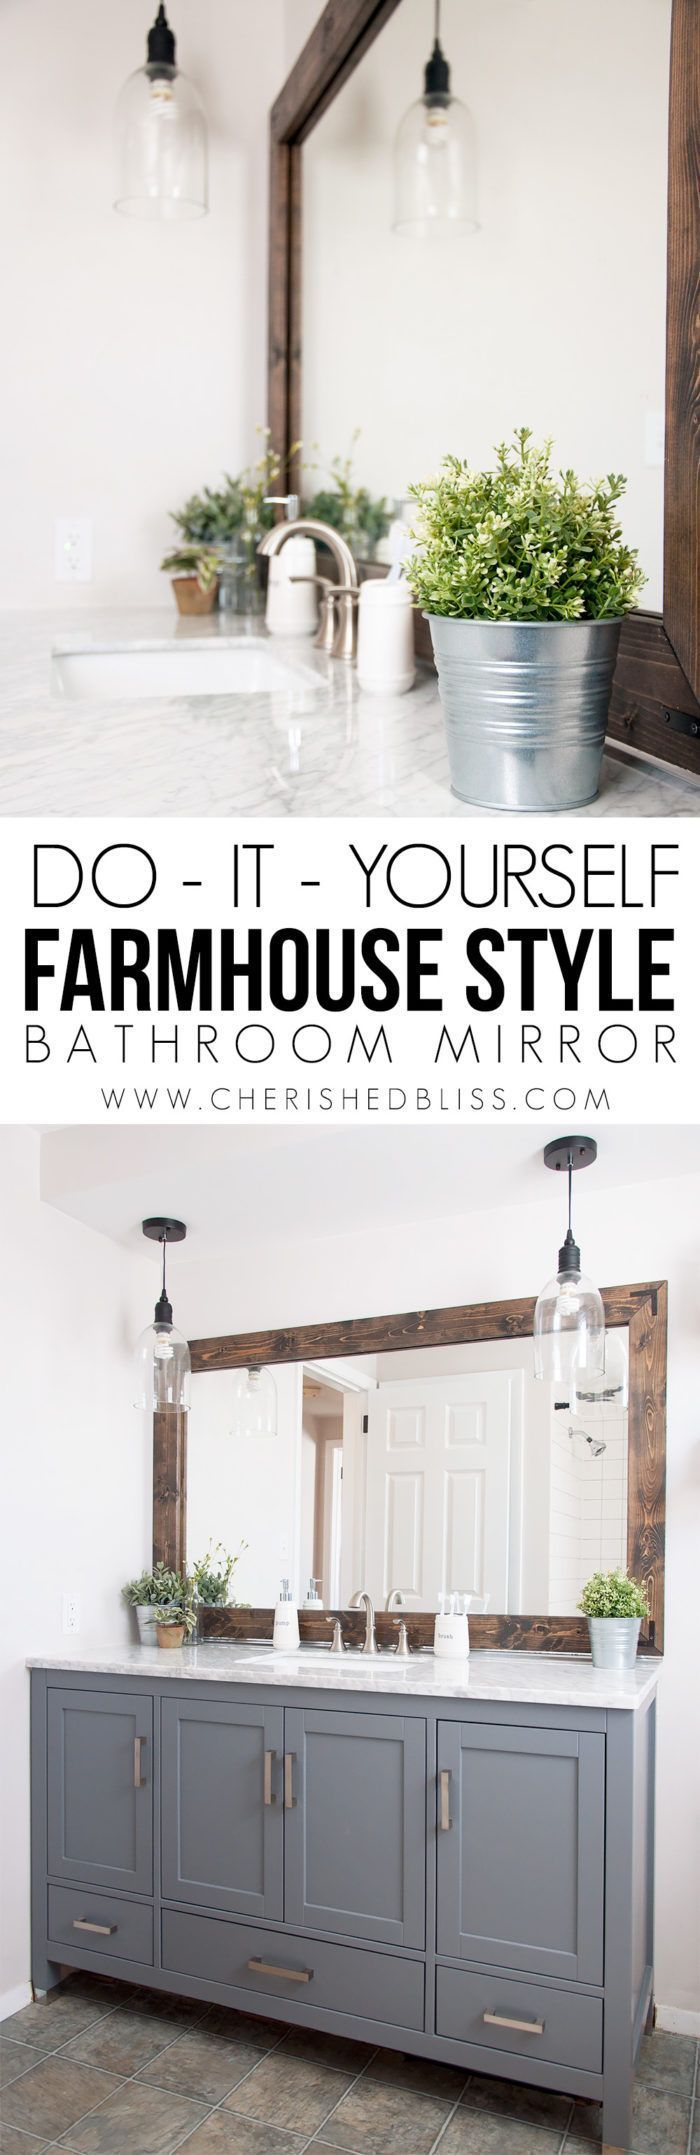 Mission style bathroom mirror - 25 Best Ideas About Craftsman Bathroom Mirrors On Pinterest Craftsman Bathroom Craftsman Wall Mirrors And Craftsman Kitchen Faucets